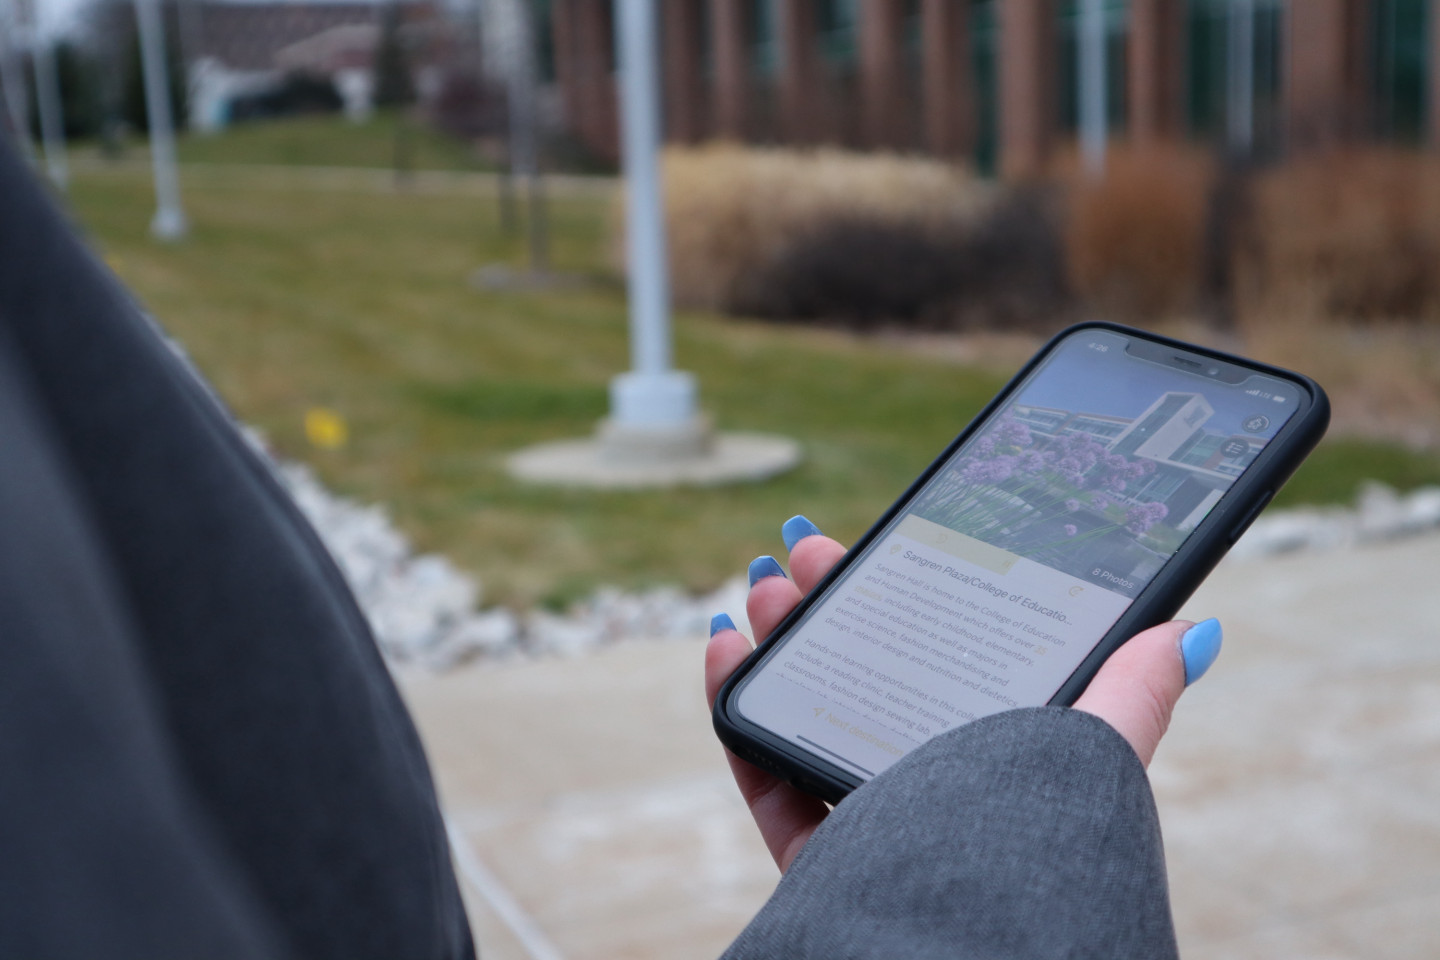 A woman holds a phone with the campus tour app open.